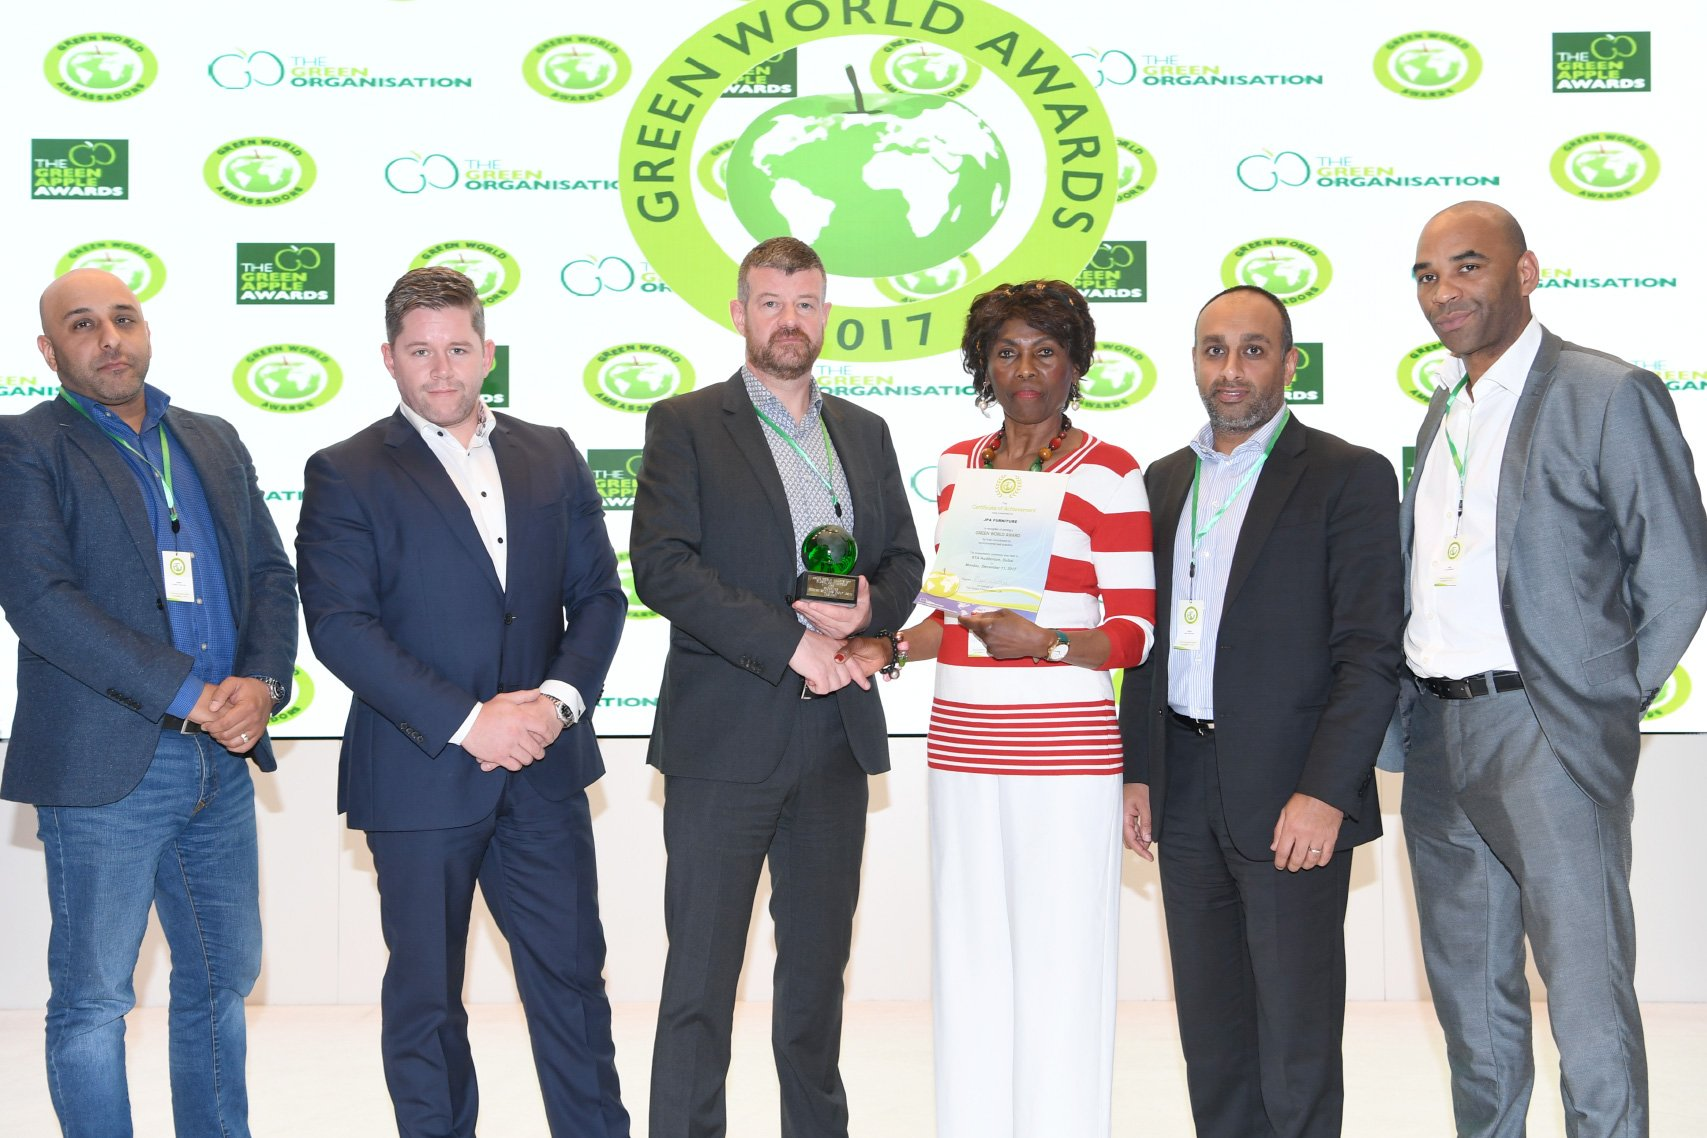 GSUK Wins At Green World Awards In Dubai